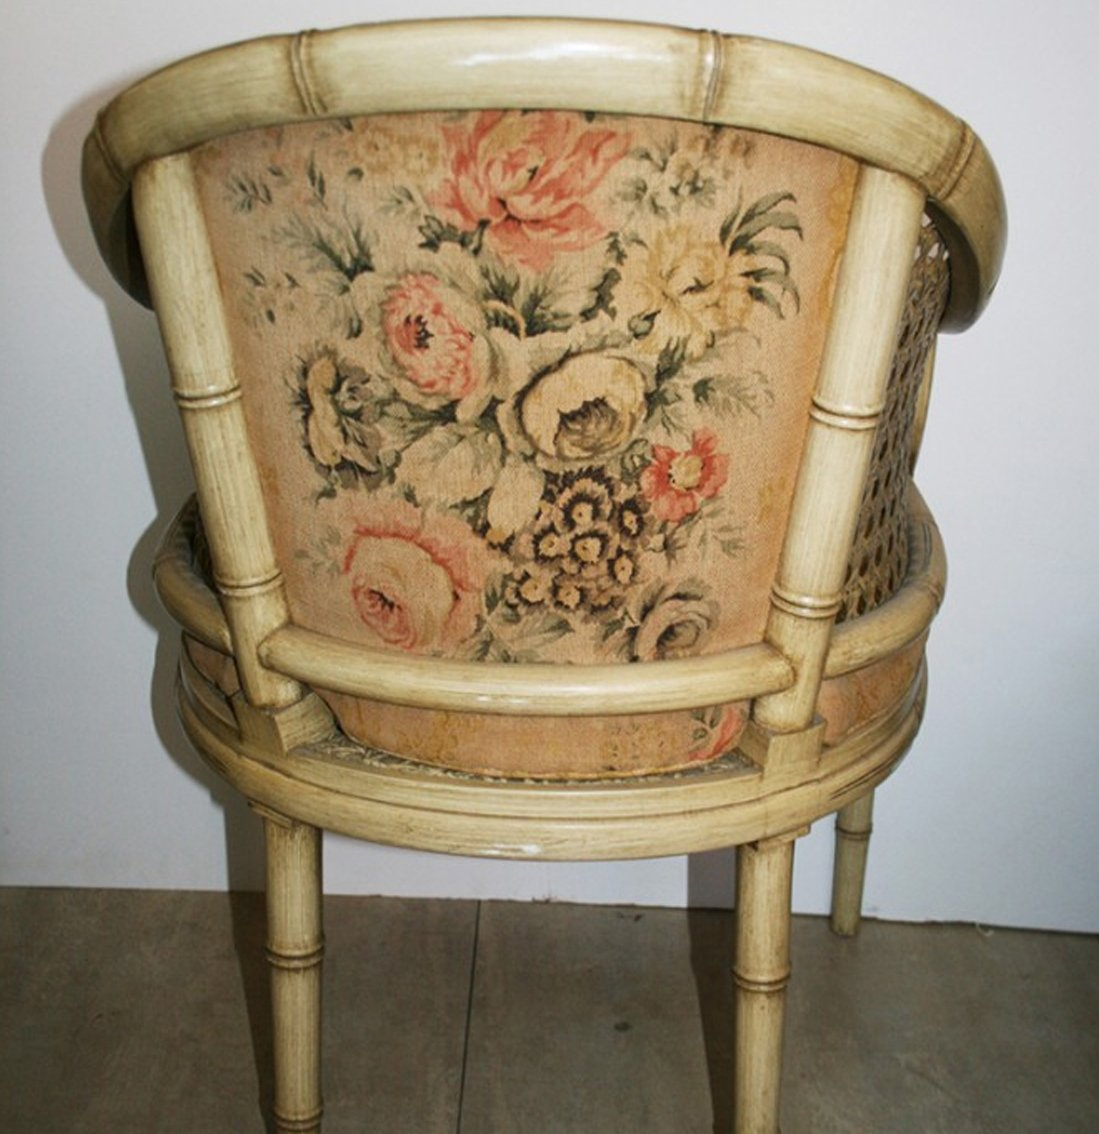 Vintage Cream Lacquered Faux Bamboo Barrel Chair 7. $1,223.00. Price per  piece - Vintage Cream Lacquered Faux Bamboo Barrel Chair For Sale At Pamono